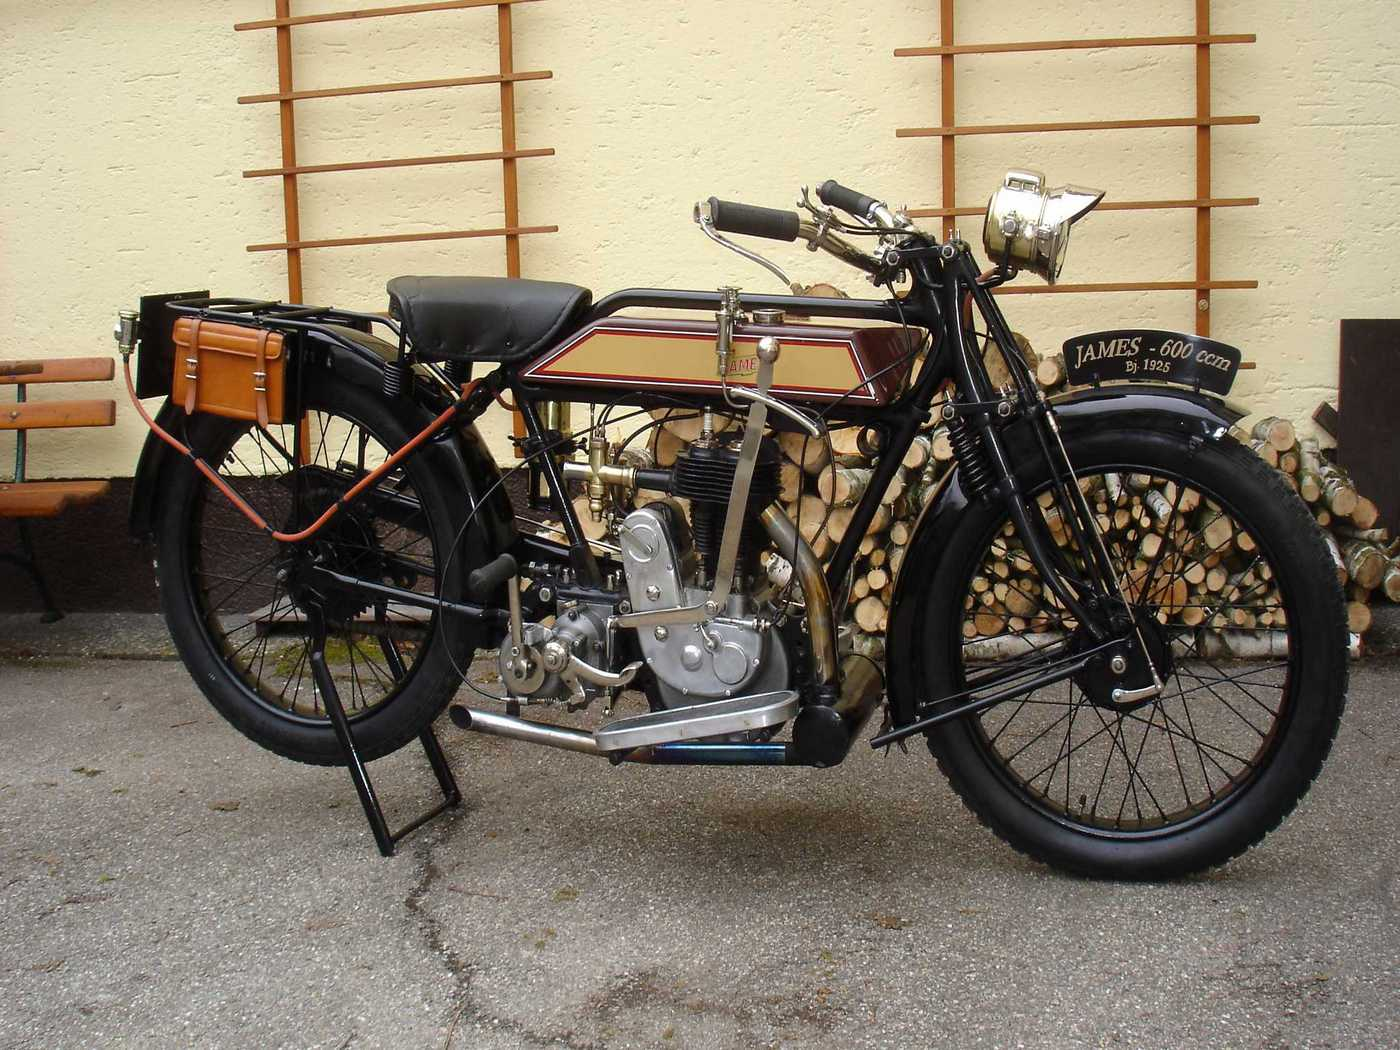 James Classic Motorcycles